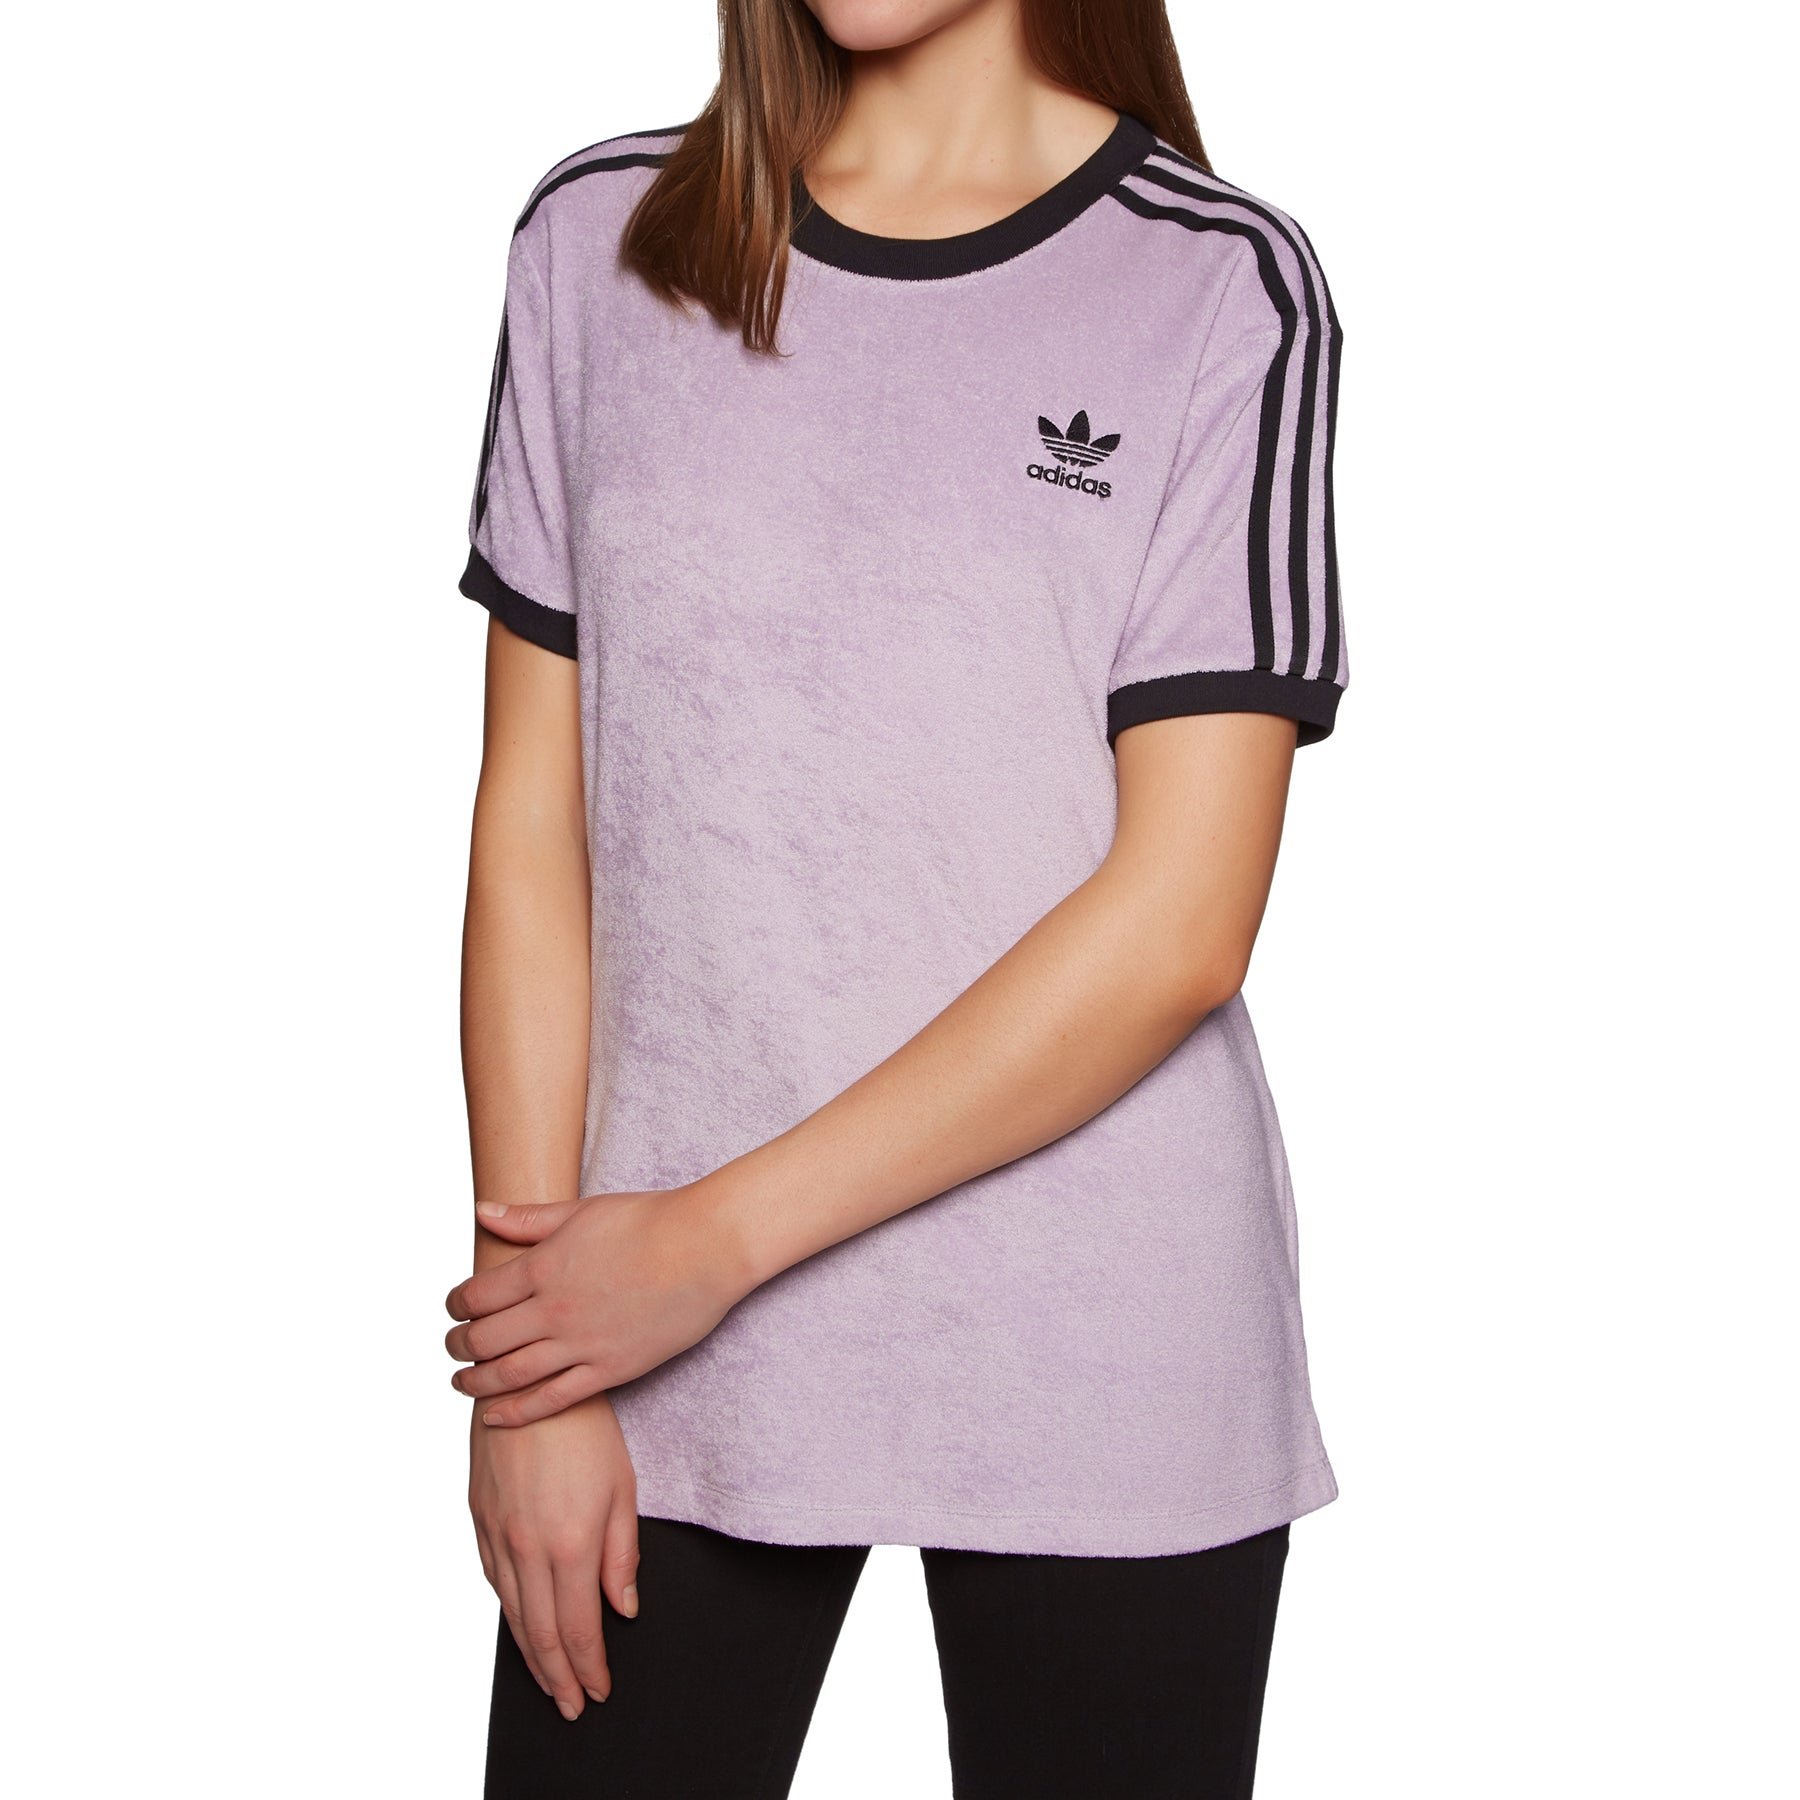 Adidas Originals 3 Stripe Womens Short Sleeve T-Shirt - Soft Vision